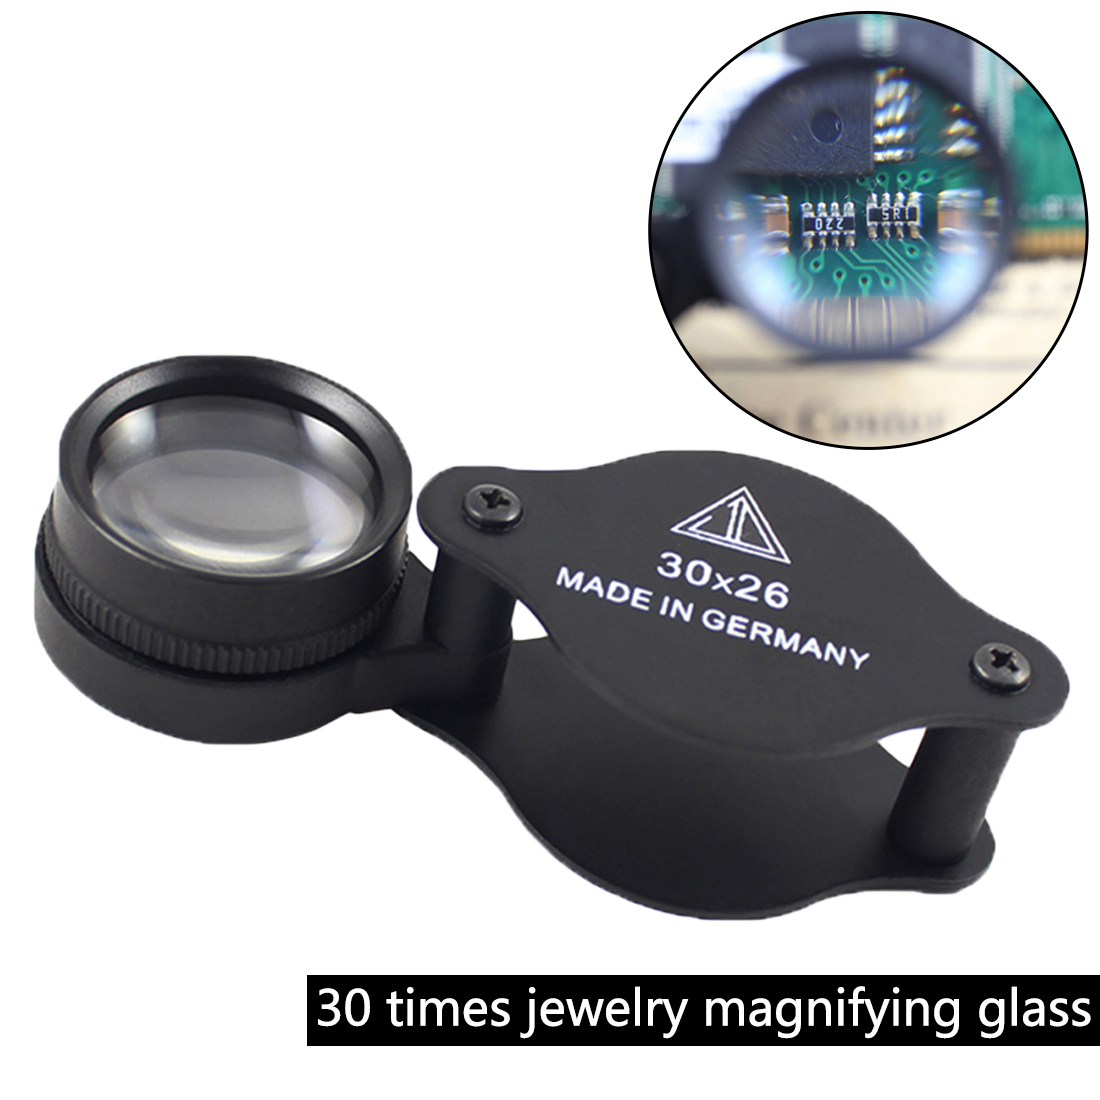 Hot sale 1pc 30x26mm Jeweler Optics Loupes Magnifier Glass Magnifying Lens Microscope For Coins Stamps Jewelry Lupe